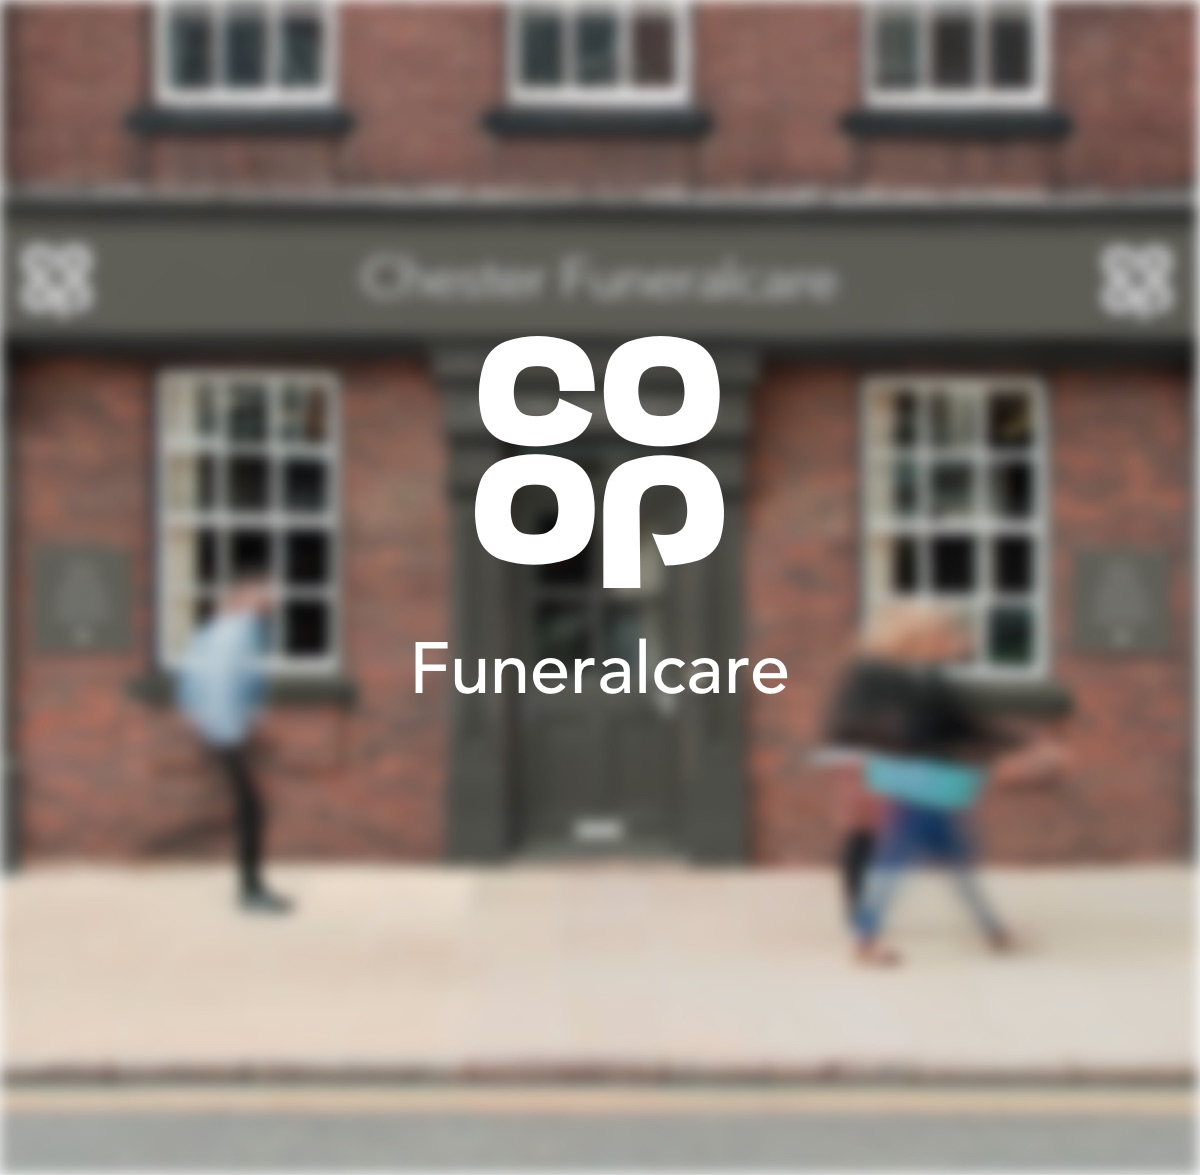 Funeral Directors in Congleton, West Street - Co-op